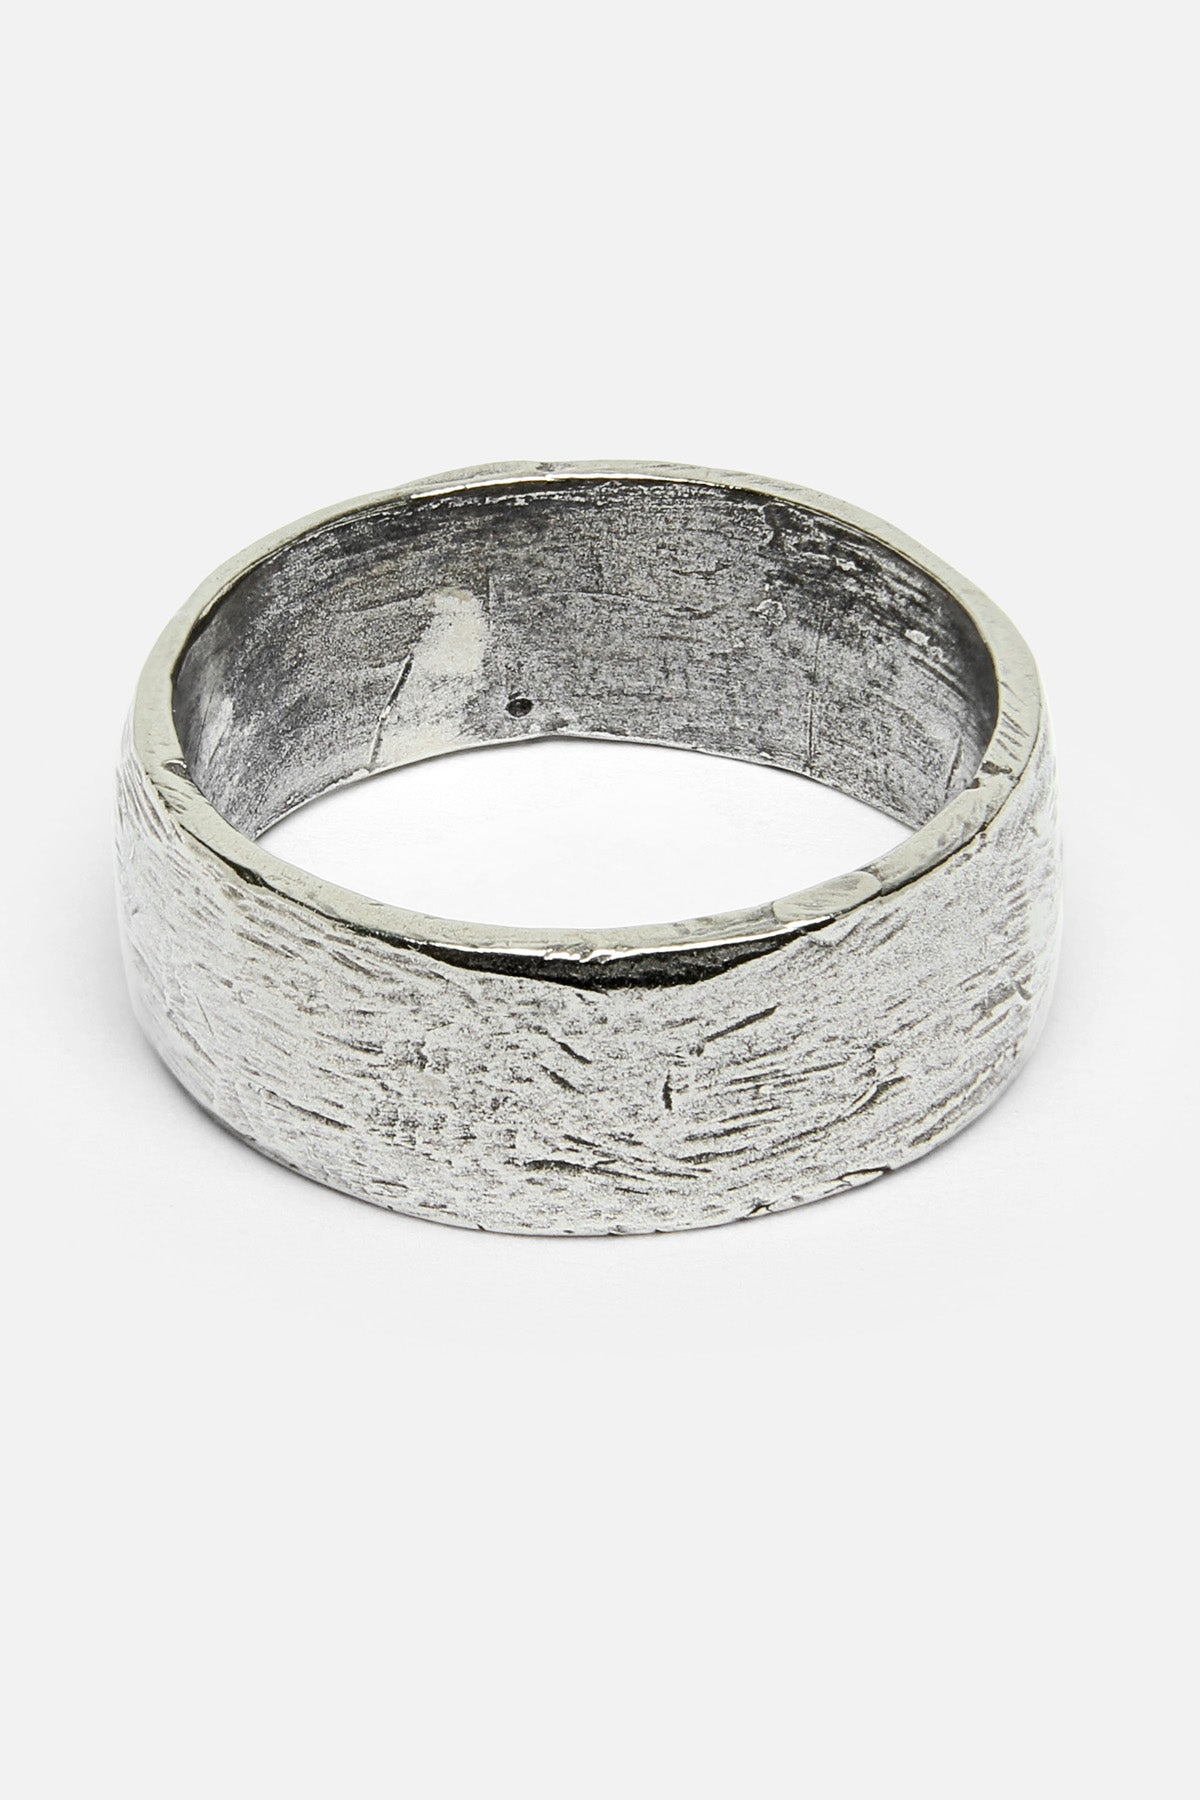 FORTUNE BAND RING IN WHITE BRONZE - Fortune Goods